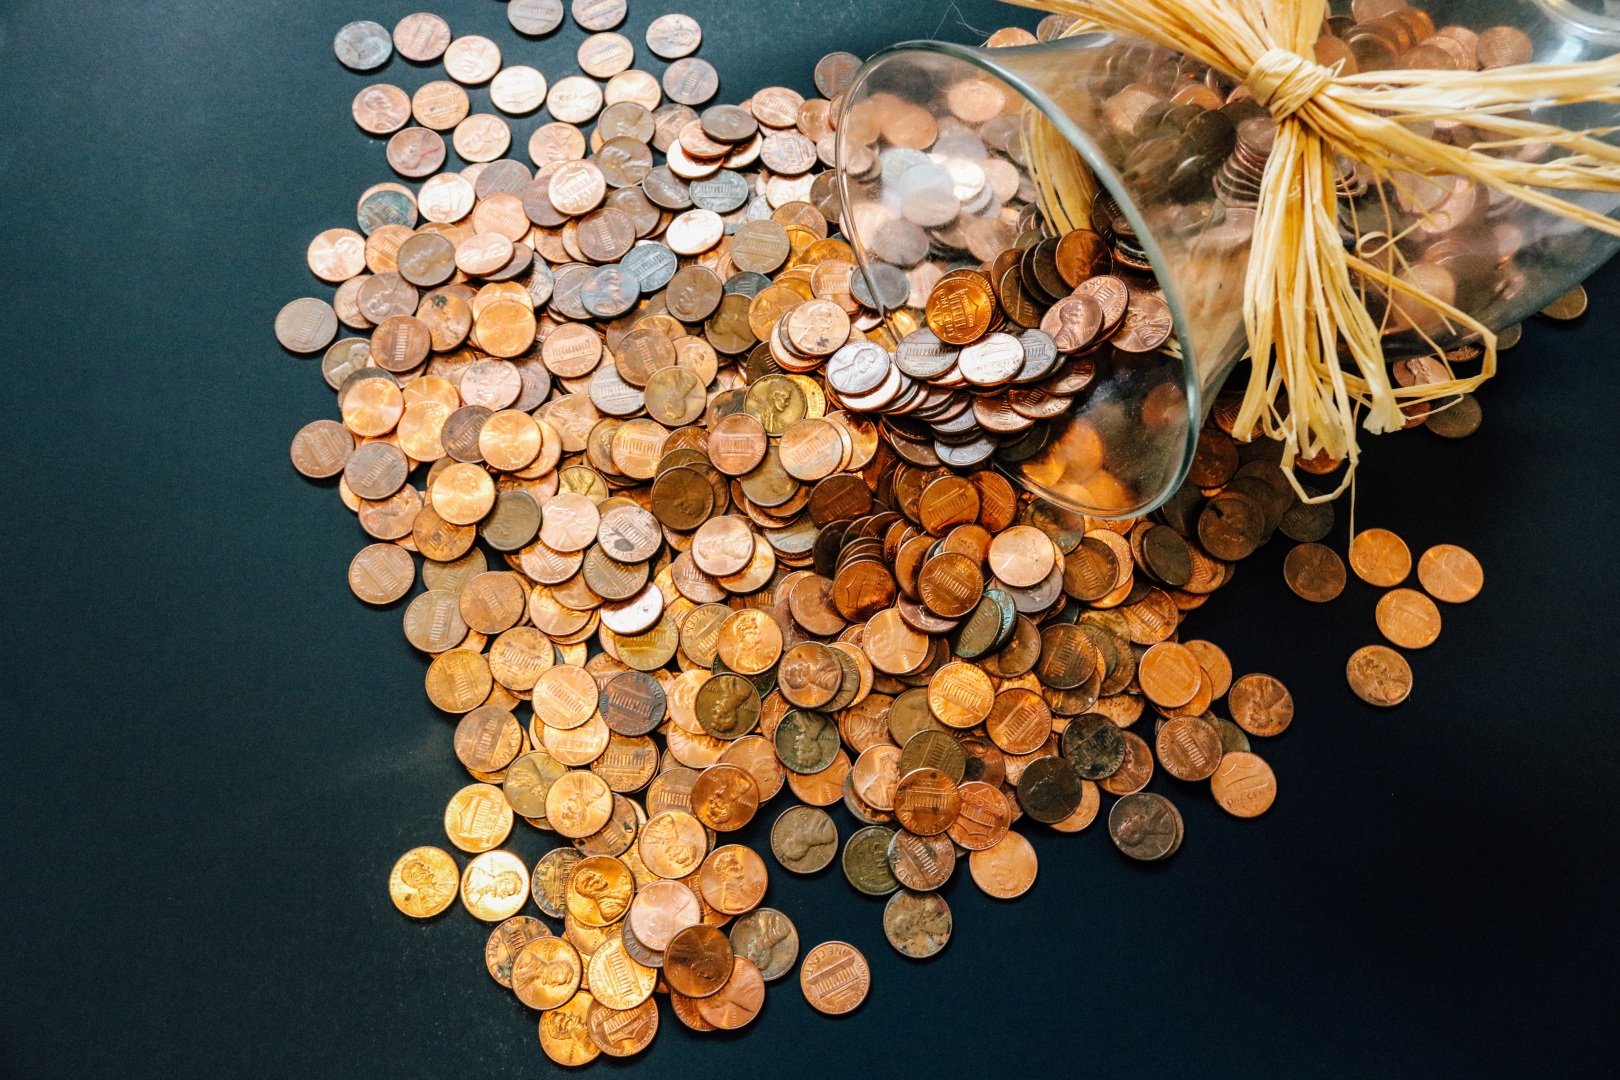 coins-pennies-money-currency-cash-finance-banking